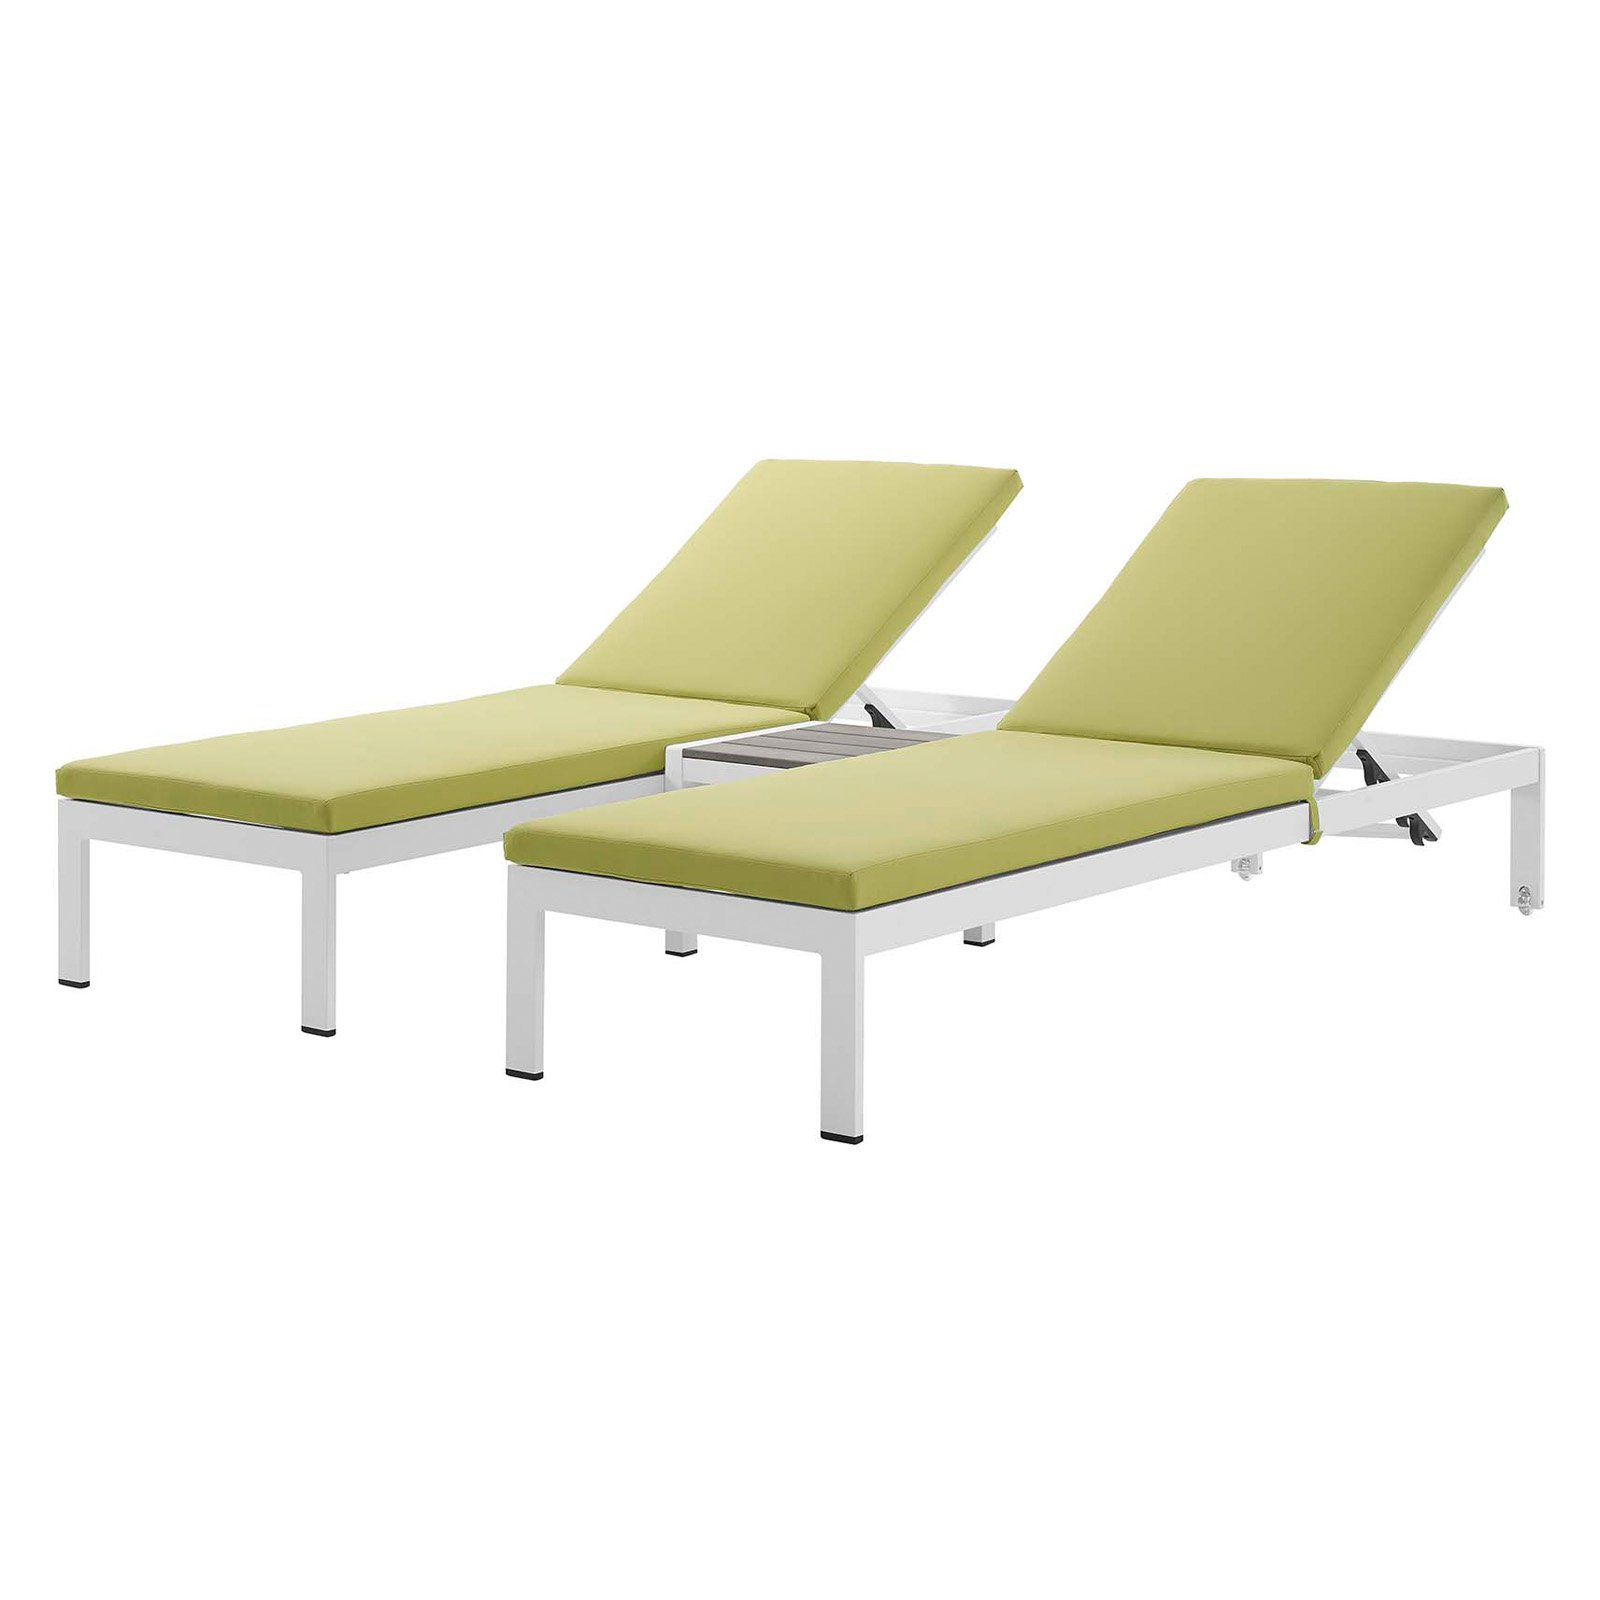 Most Recent Shore Aluminum Outdoor Chaises Regarding Modway Shore 3 Piece Outdoor Patio Aluminum Chaise With (Gallery 9 of 25)